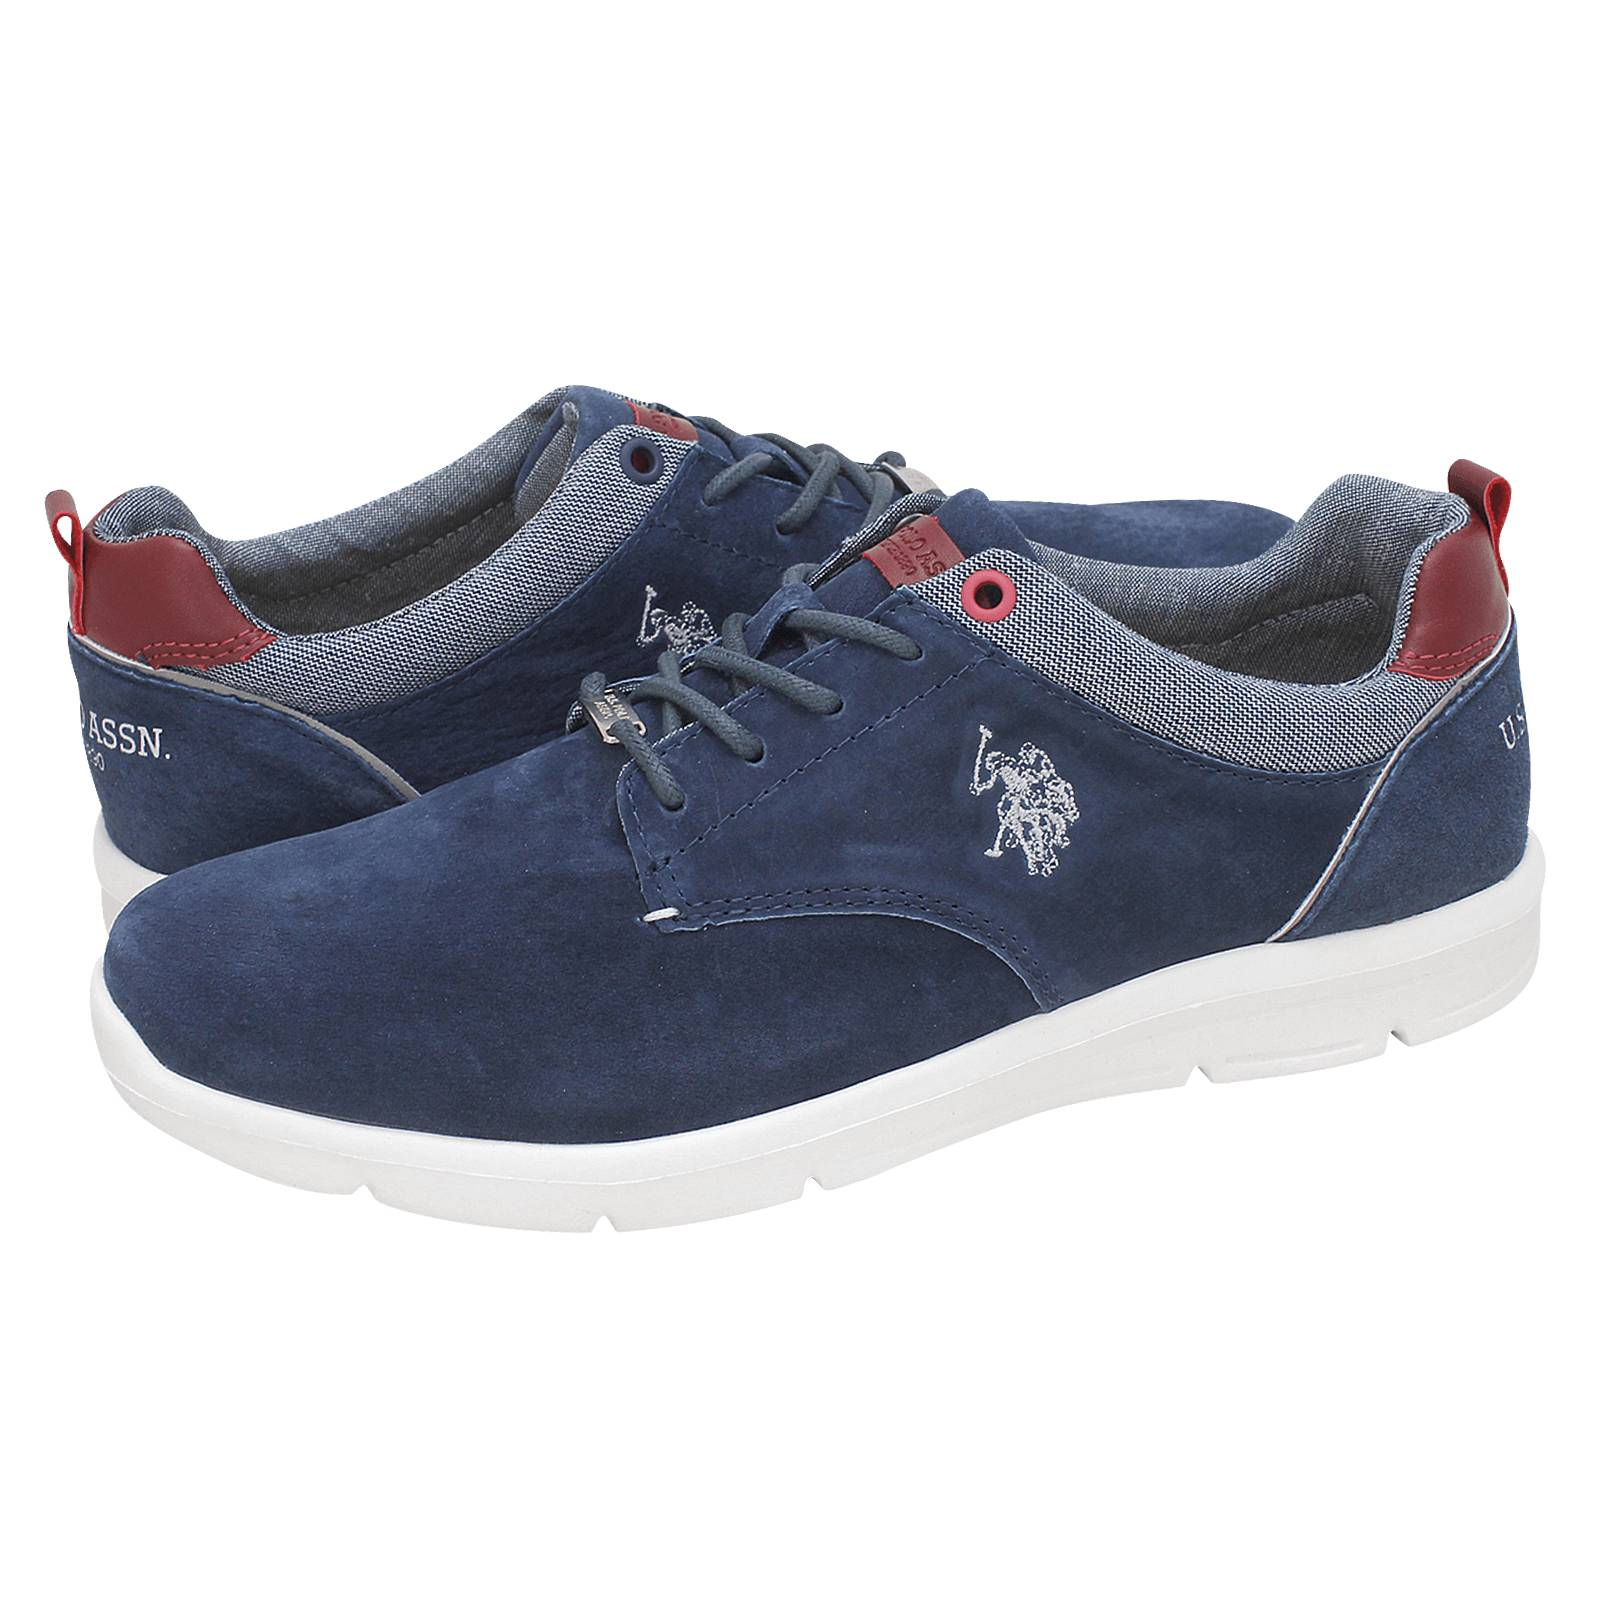 Serge Nous Baskets Polo Assn 9h6qCo